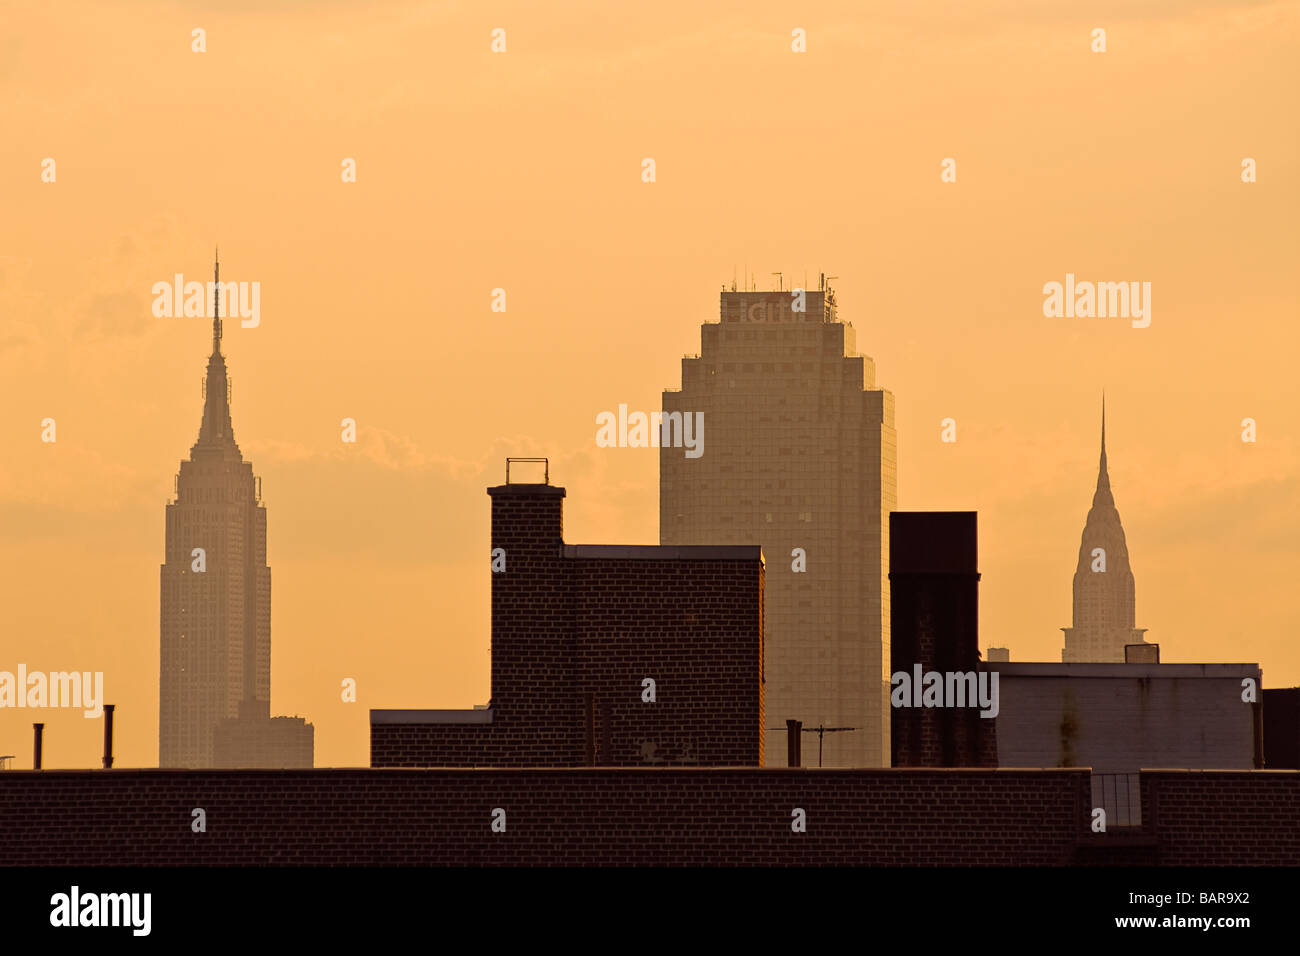 Empire State Building, Chrysler Building and the Queens Citicorp Building, Long Island City, Queens, New York City. - Stock Image